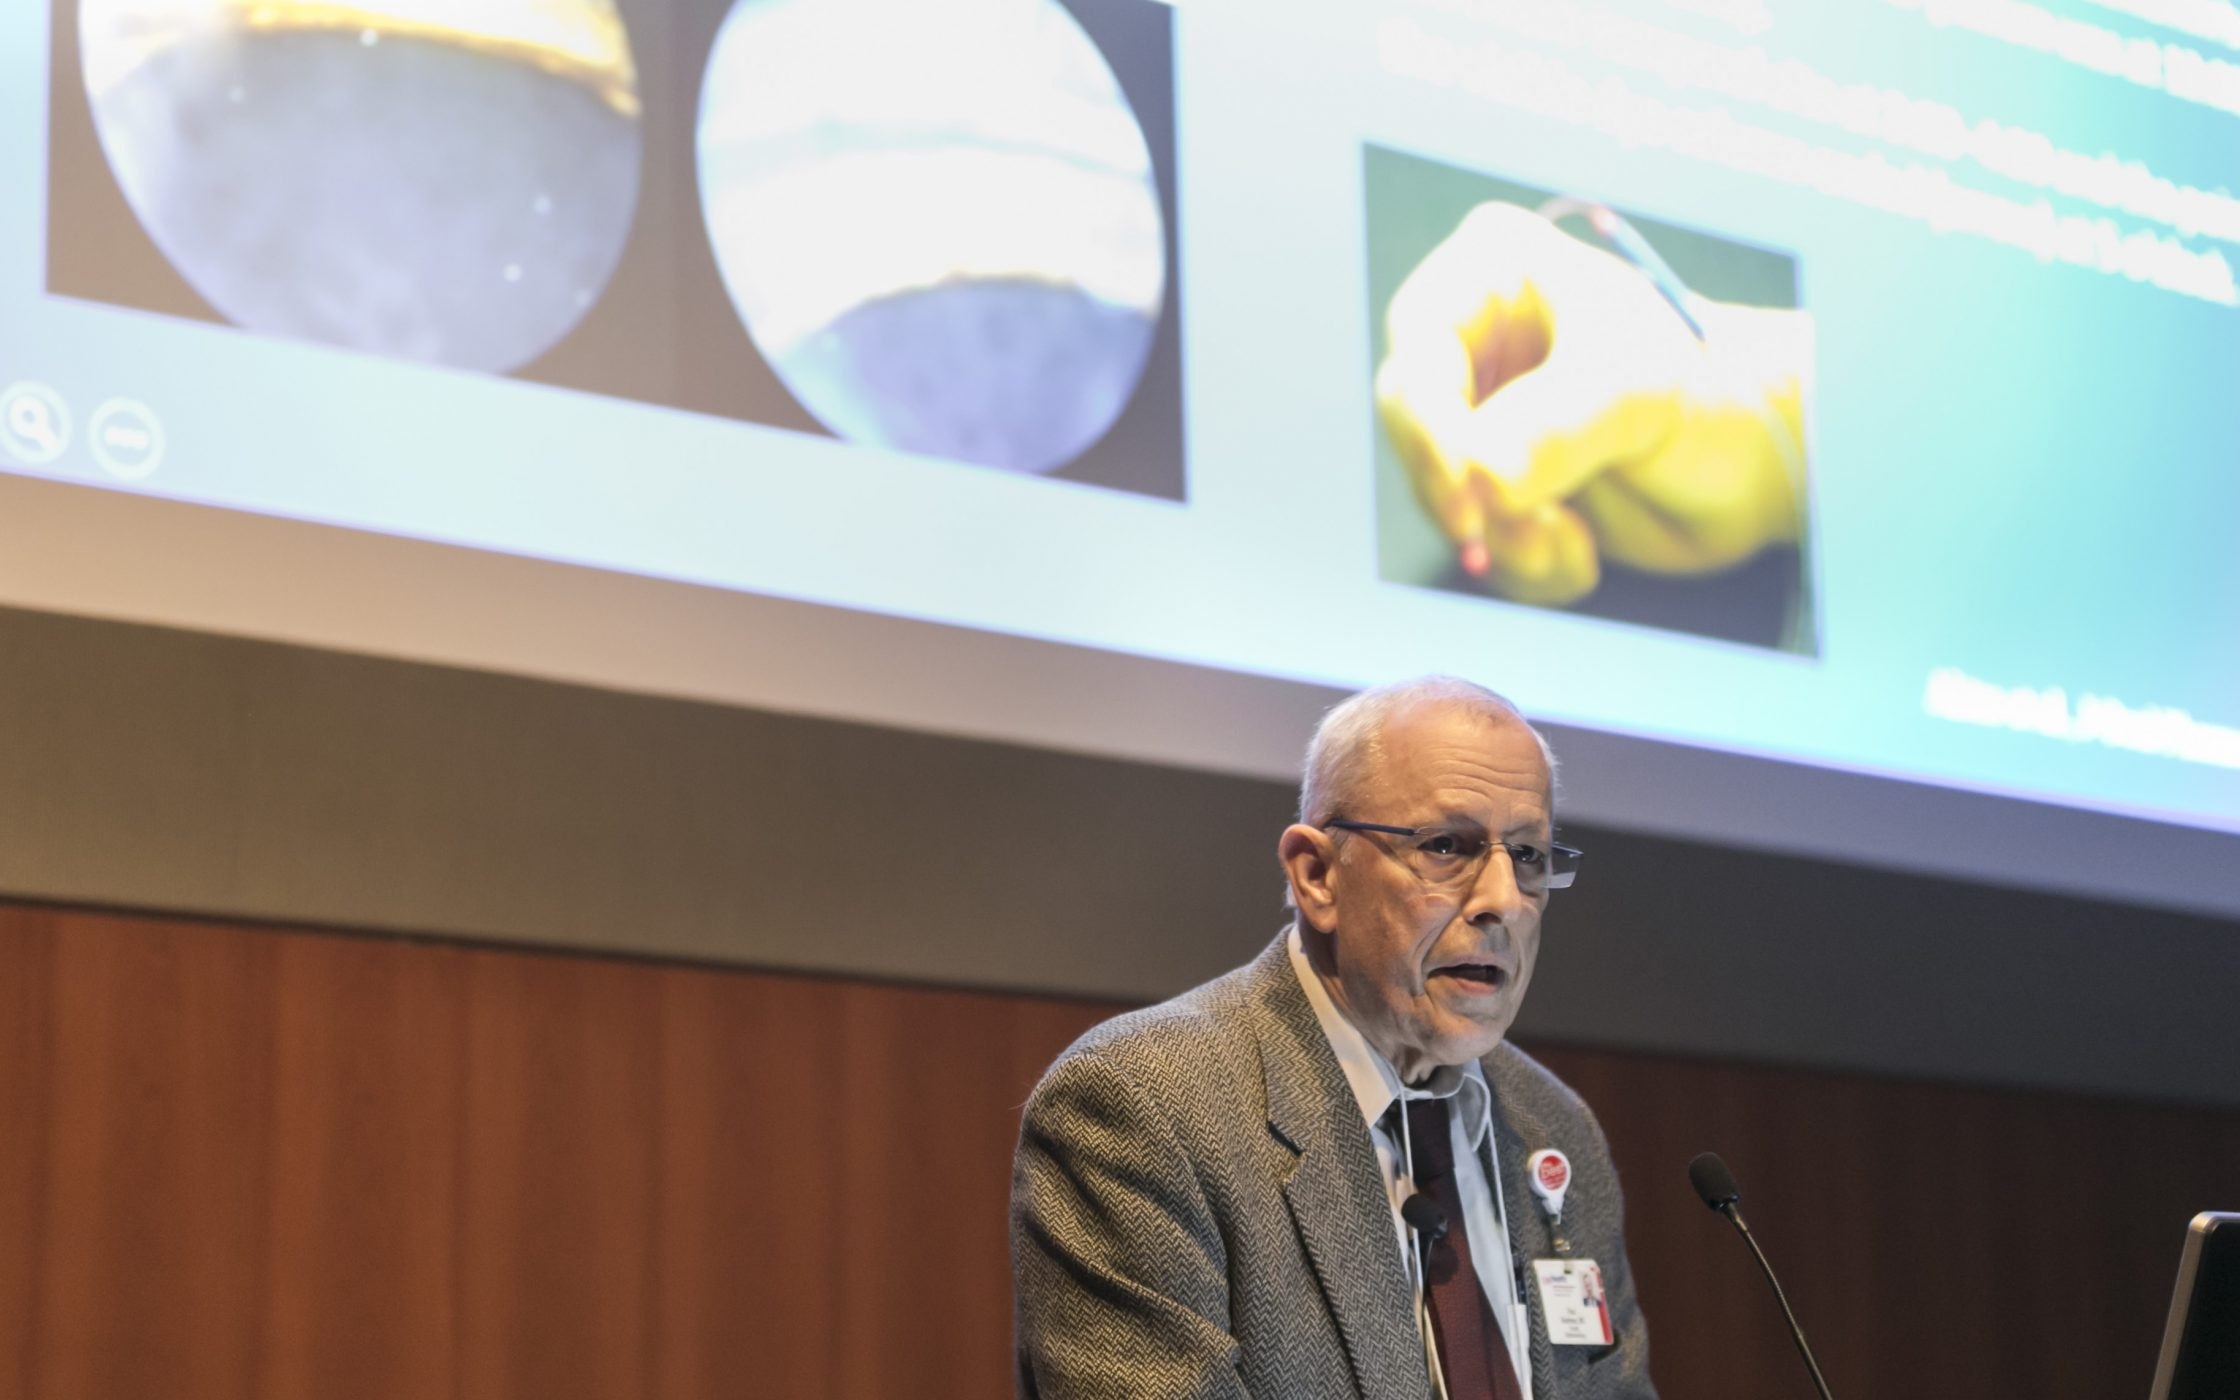 Paul Kaufman, MD presenting at the annual George Kambara, MD, Vision Science Symposium